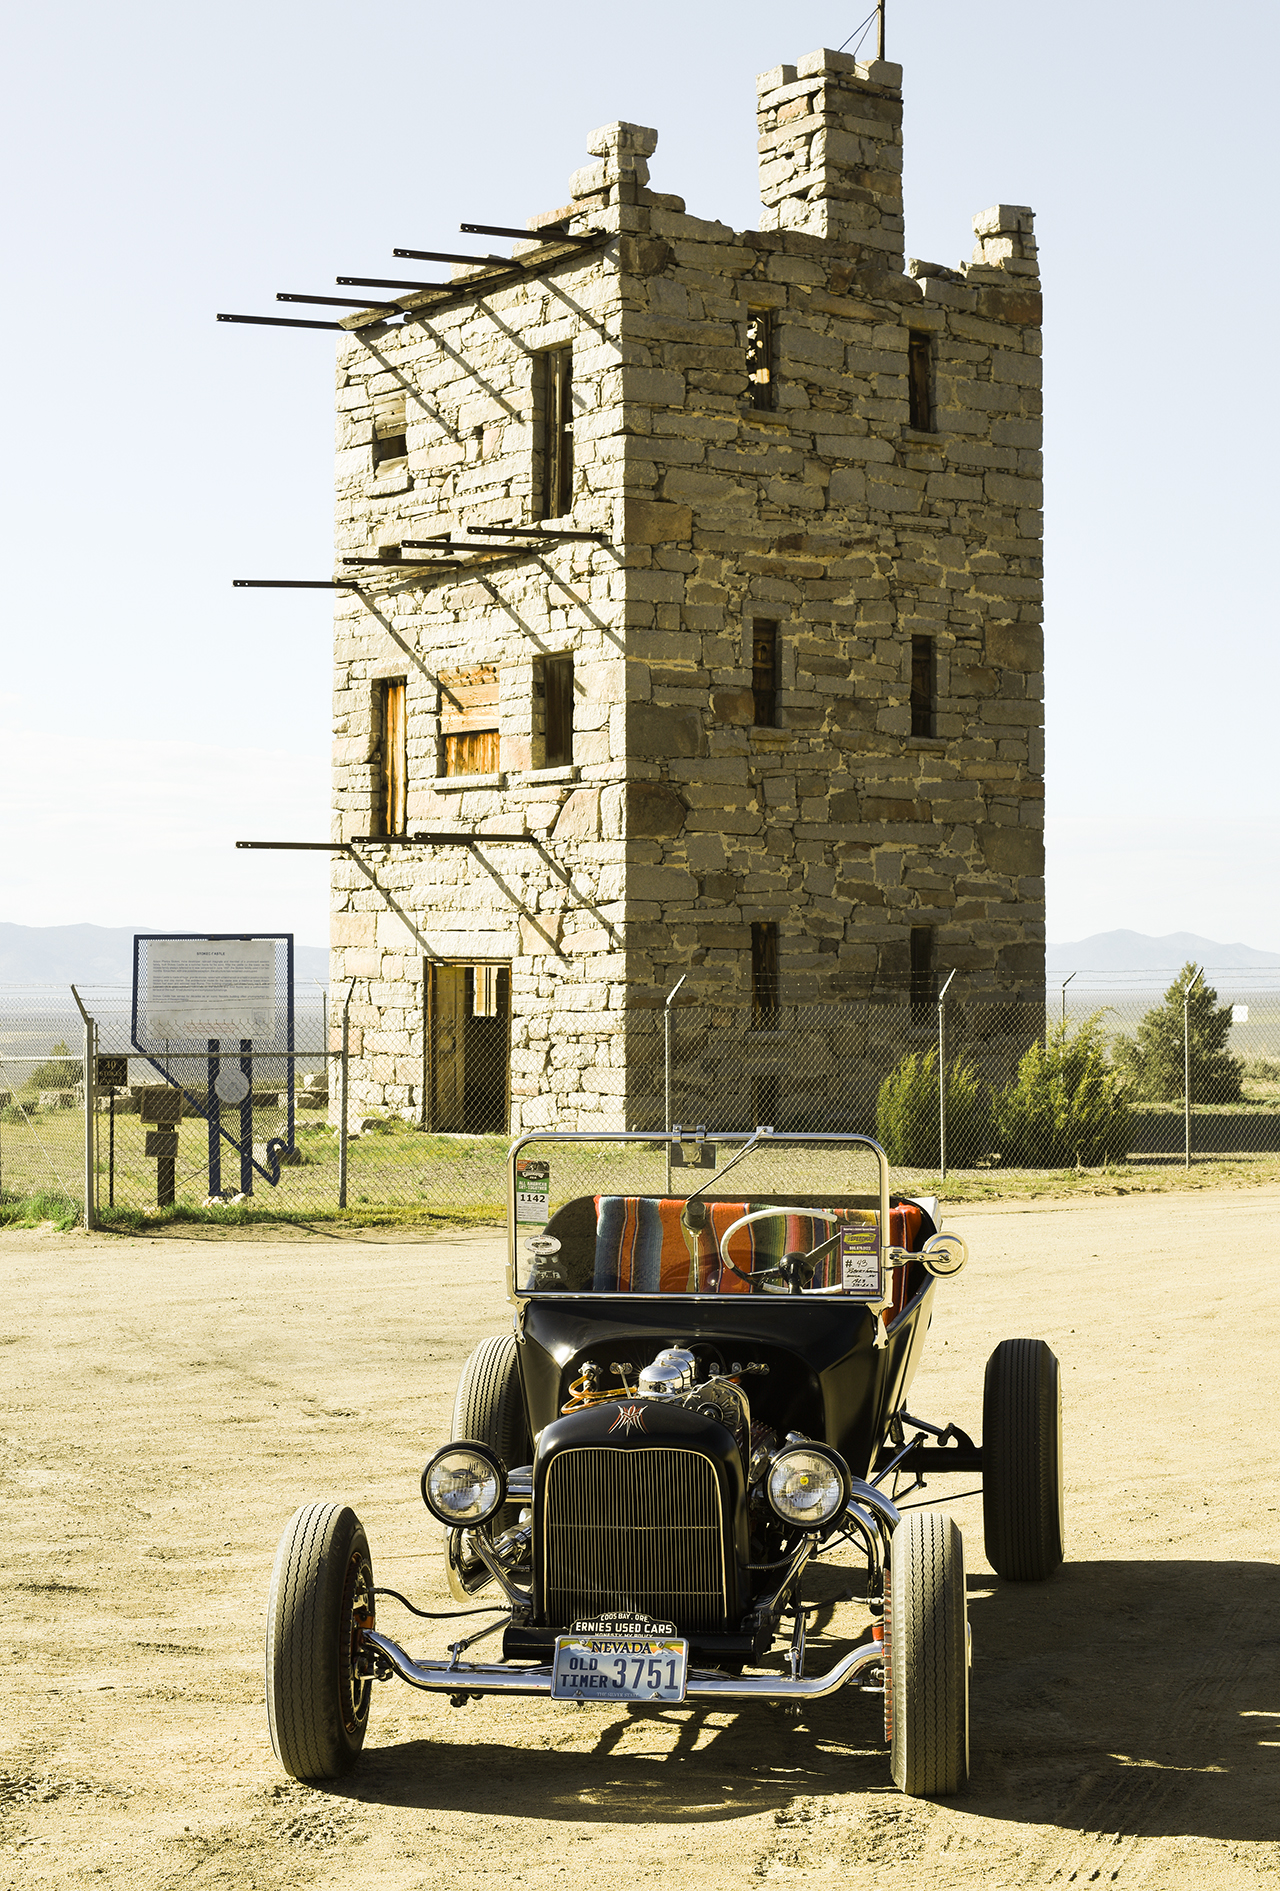 Jerry Foreman's roadster looking good in front of Stokes Castle. Jerry and his wife were married on this very spot.